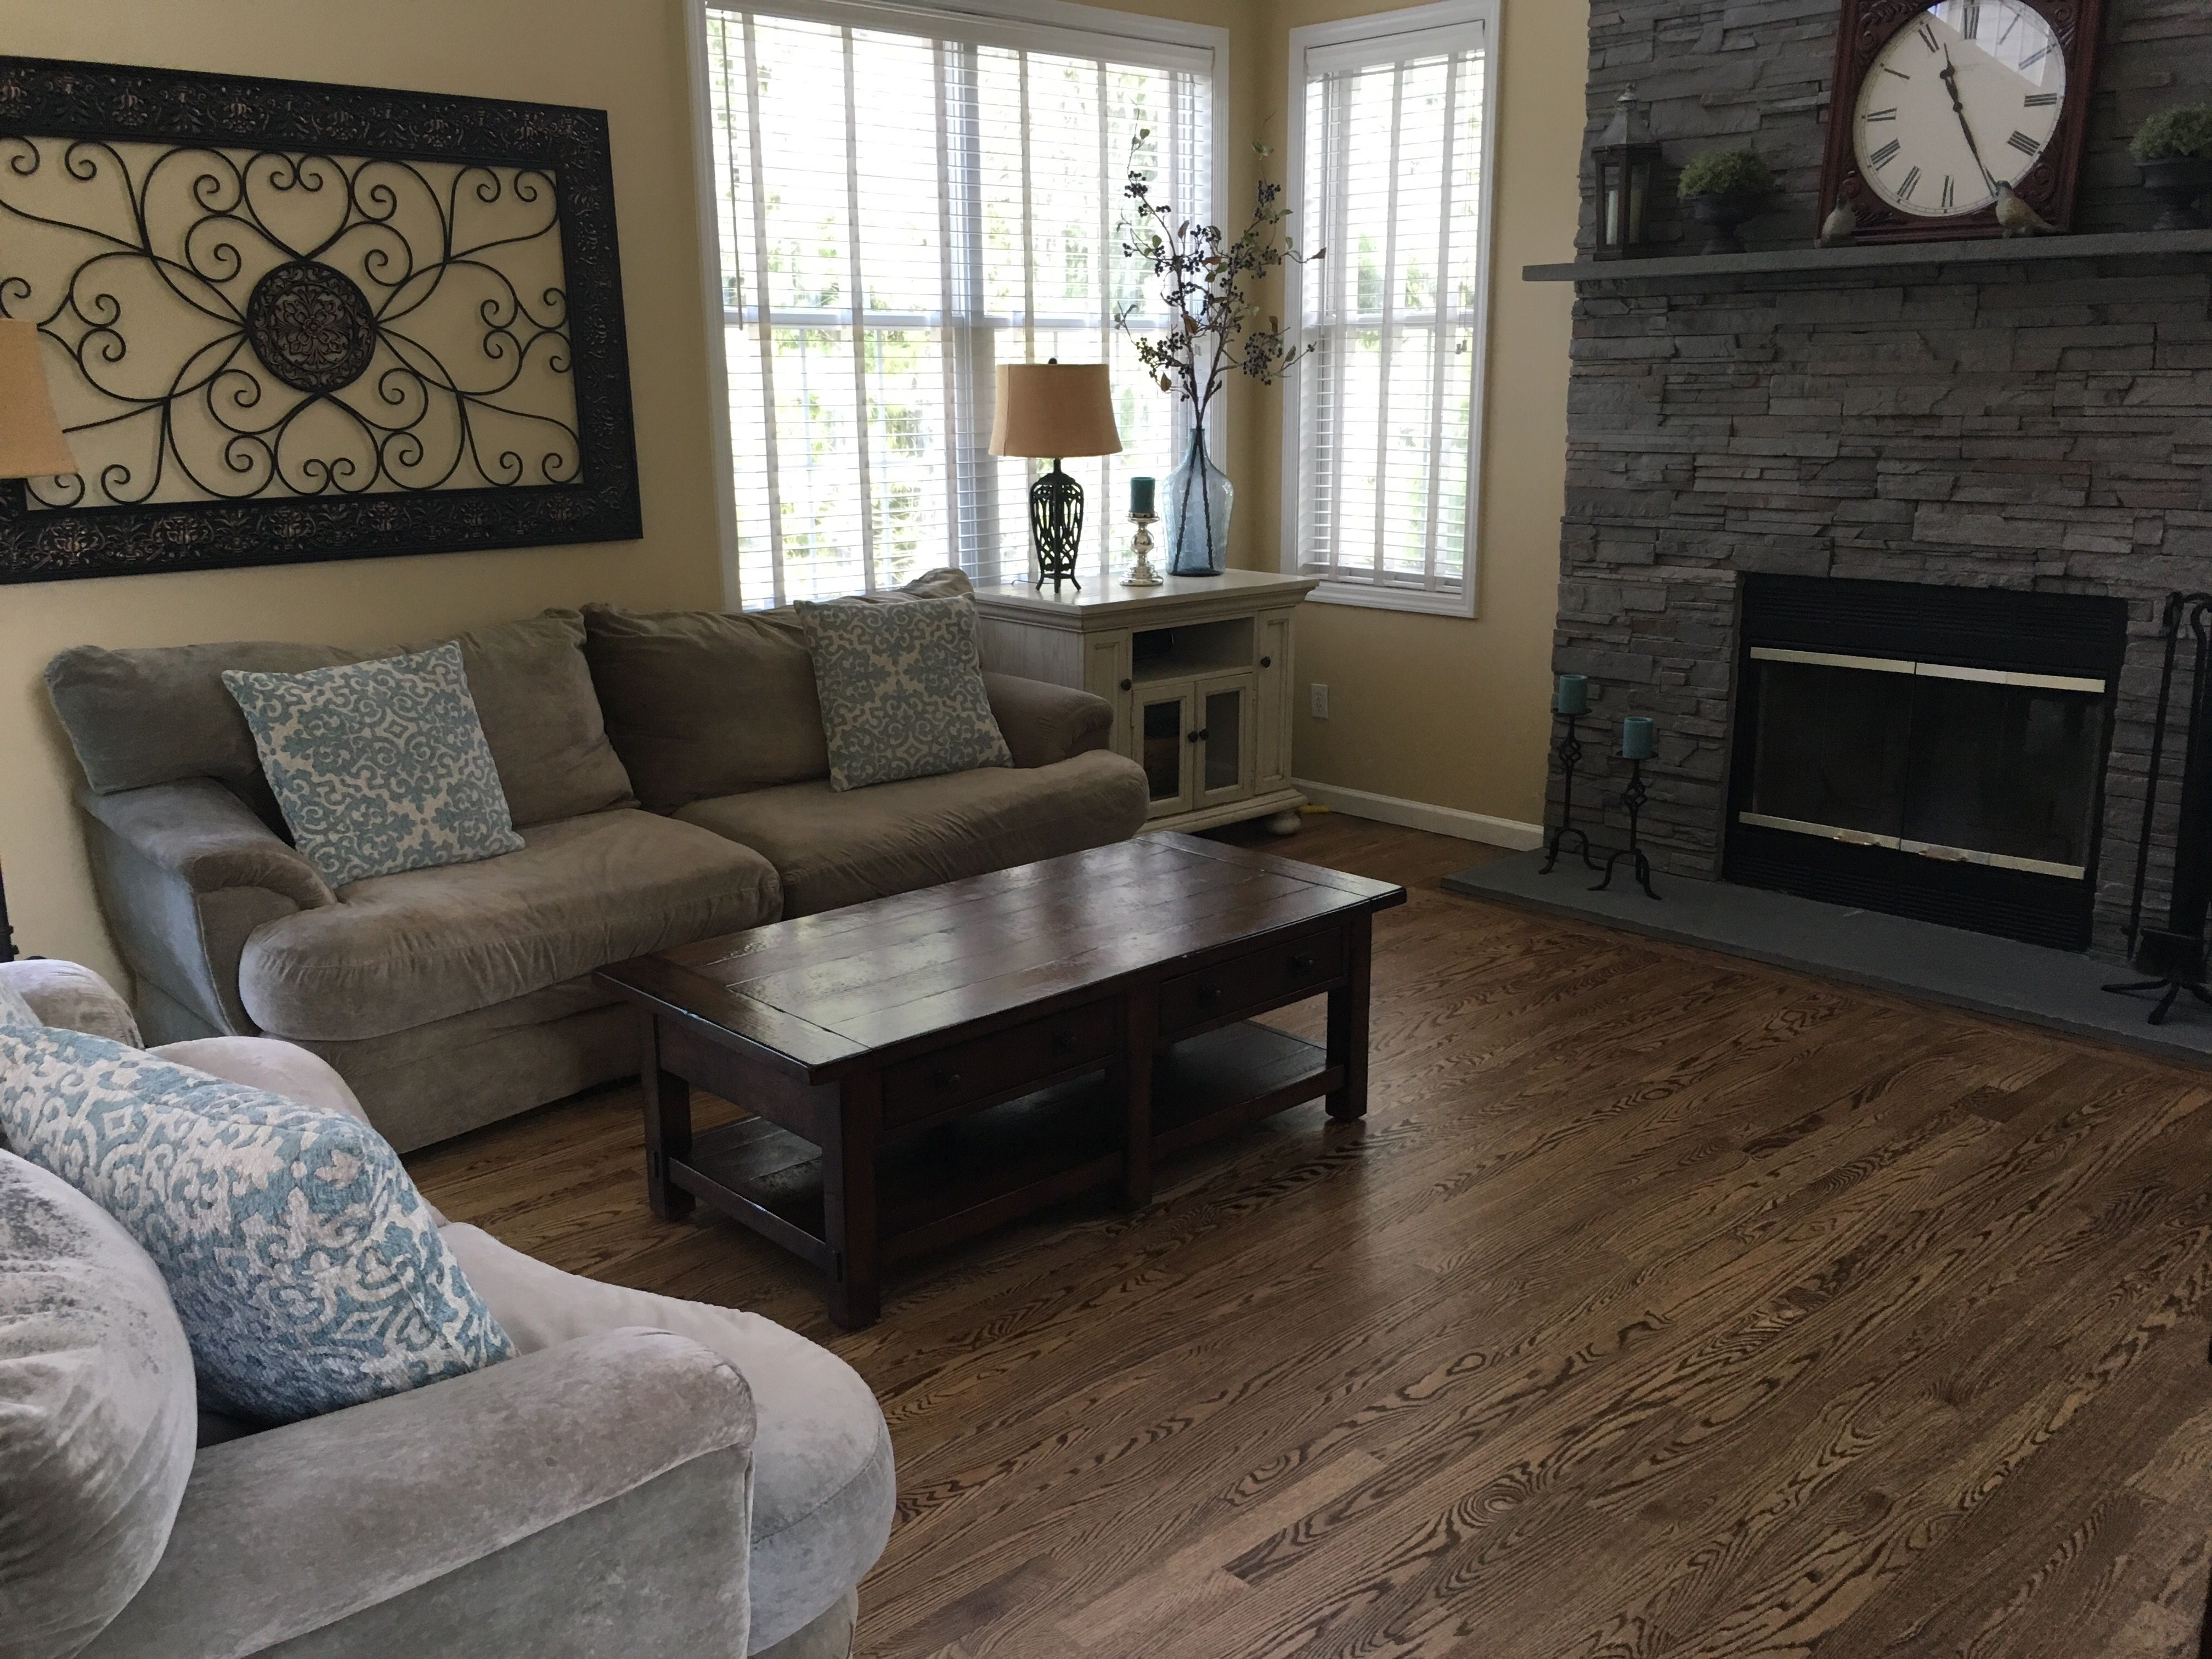 Red Oak Hardwood Floor Stained With Duraseal Medium Brown Wood Floor Colors Red Oak Floors Red Oak Hardwood Floors Stains #oak #floor #living #room